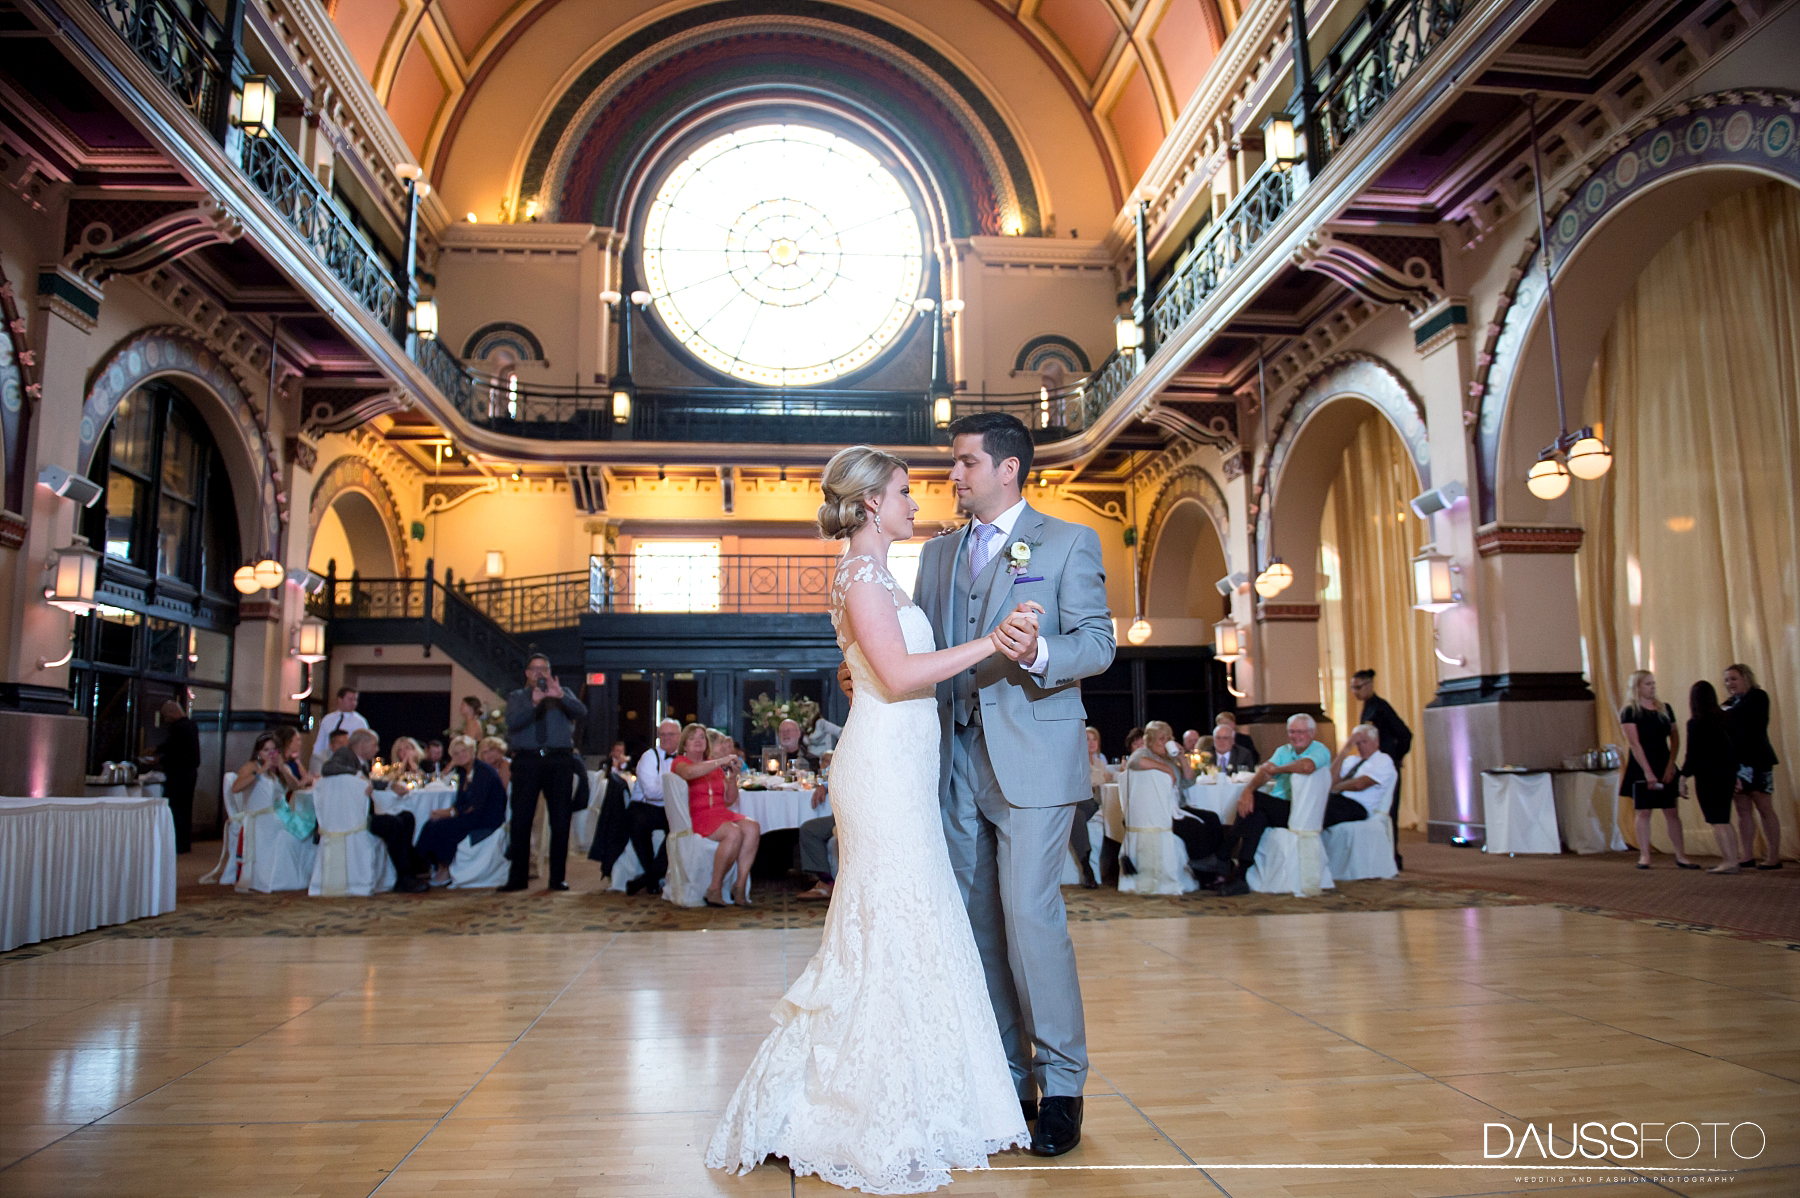 DaussFOTO_20160625_0500_Indiana Wedding Photographer_Crowne Plaza at Historic Union Station.jpg